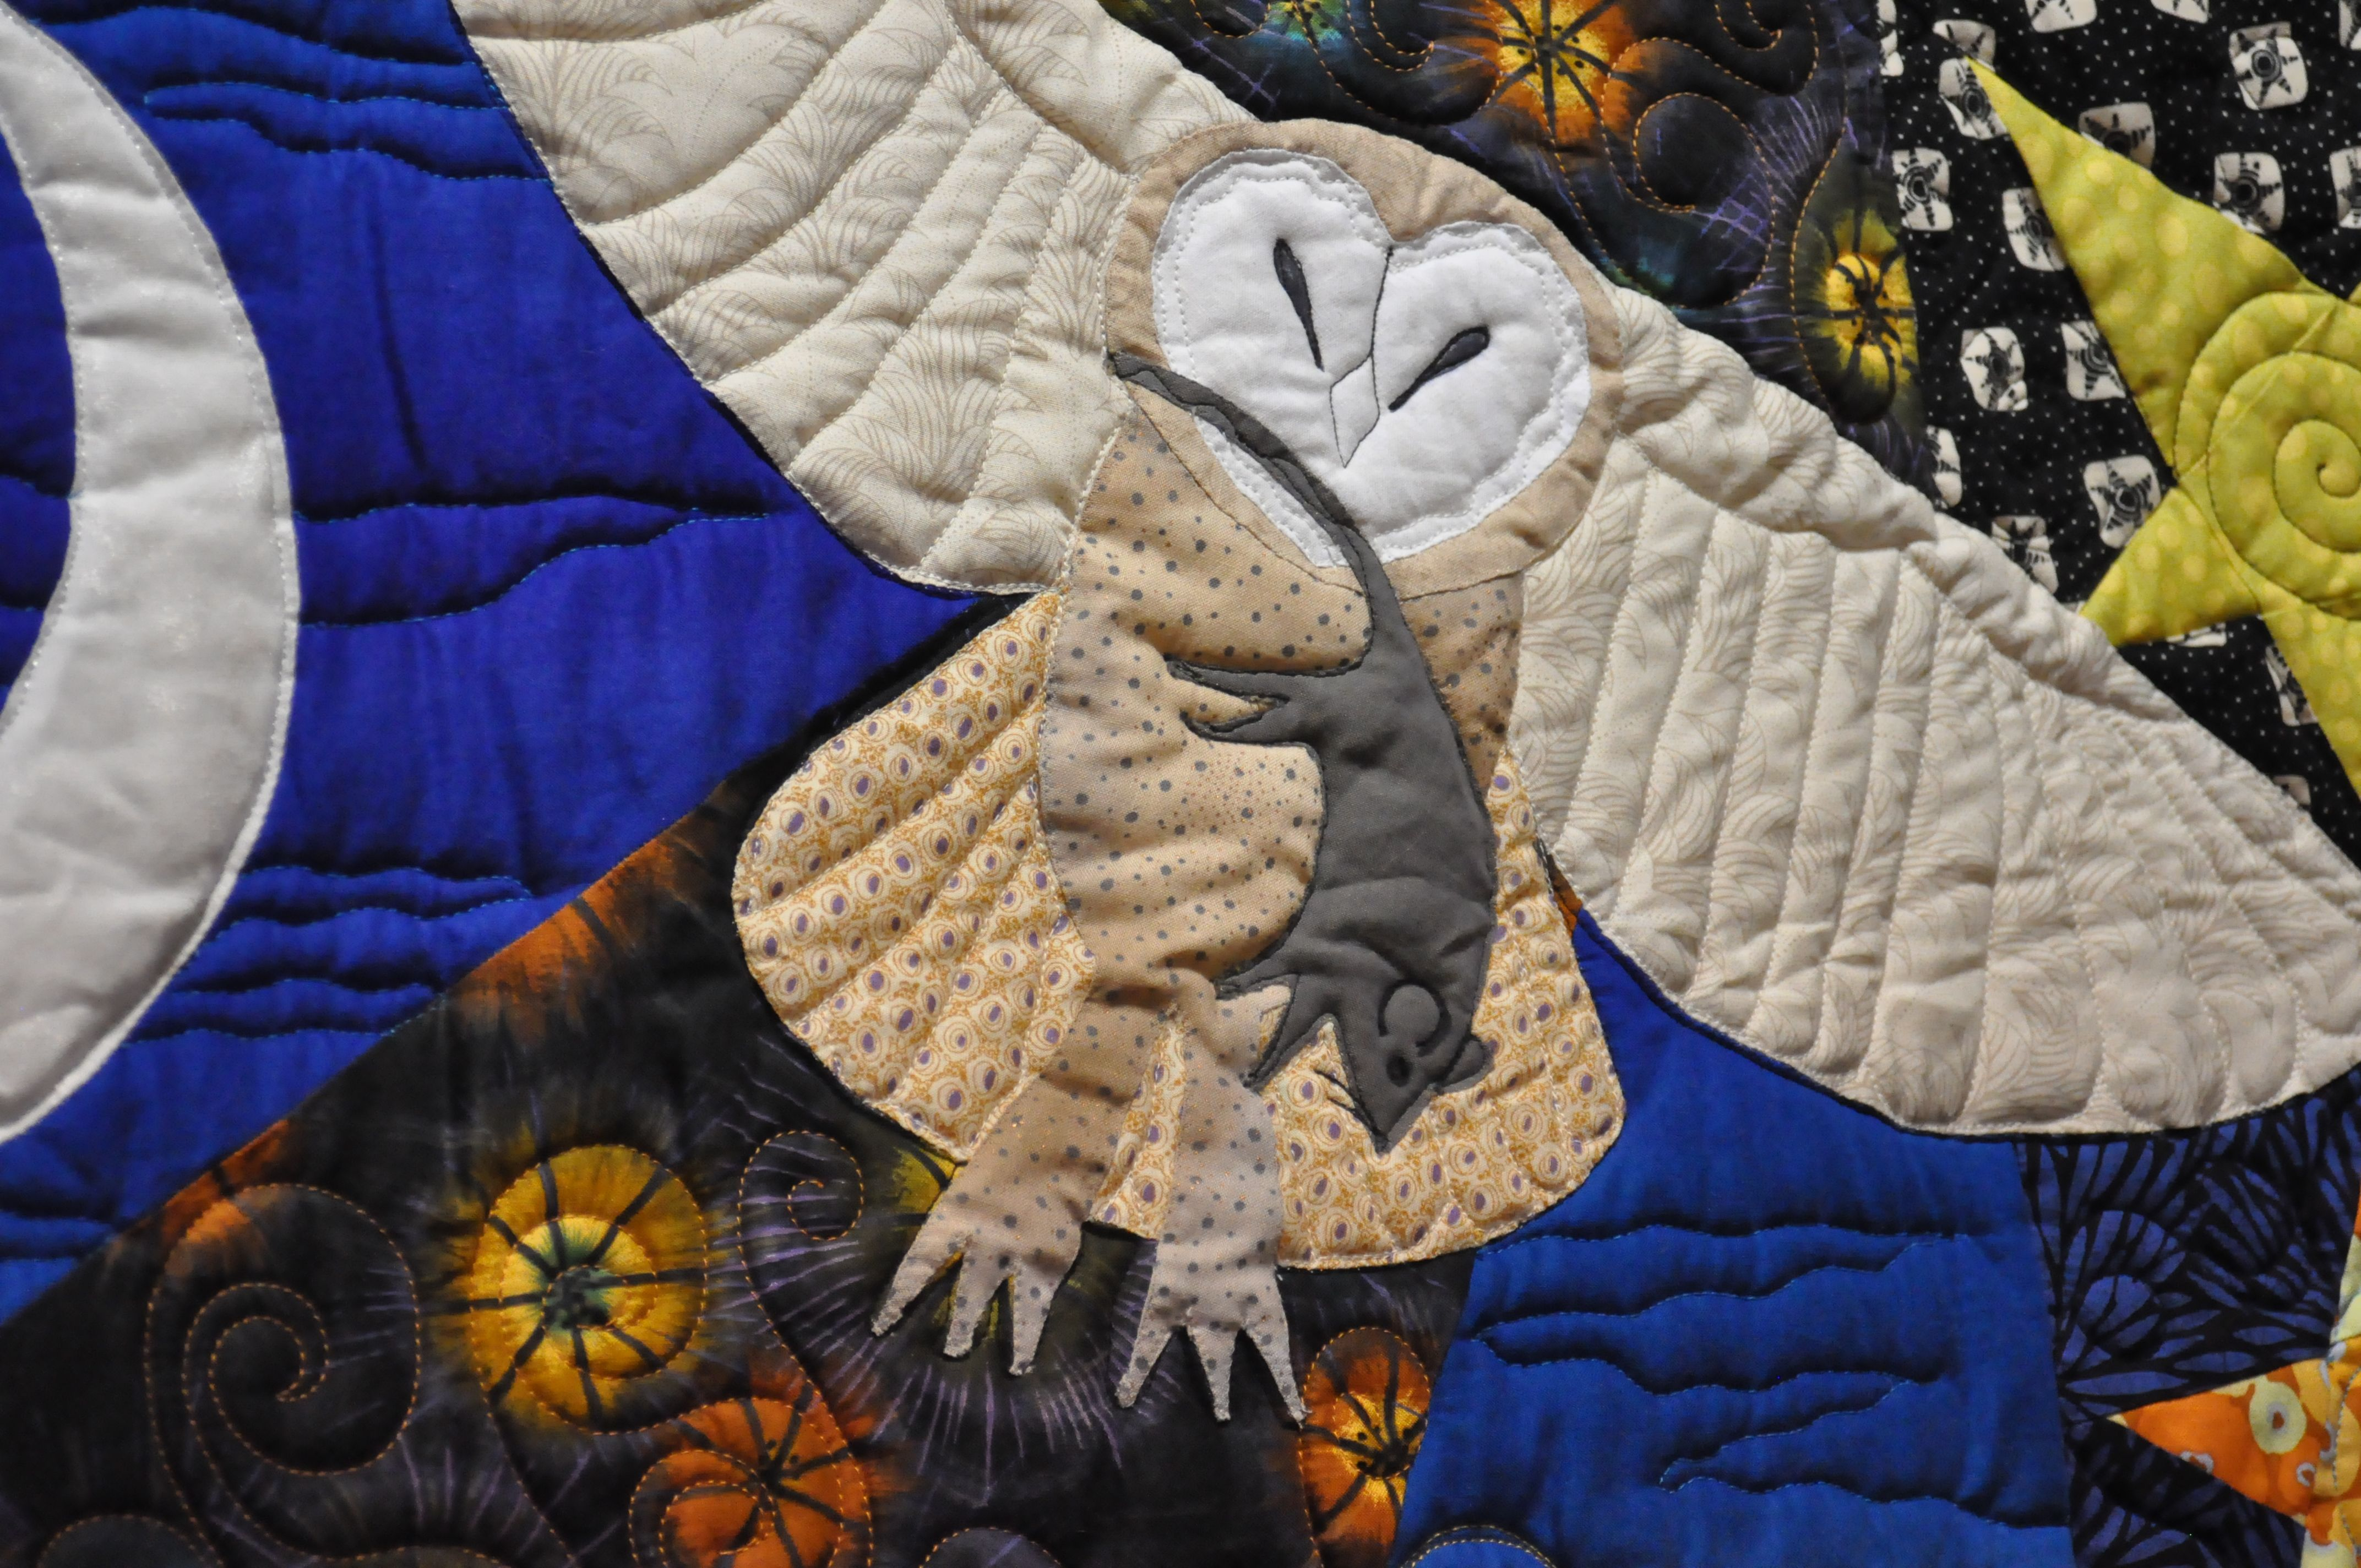 From the Long Beach International Quilt Show